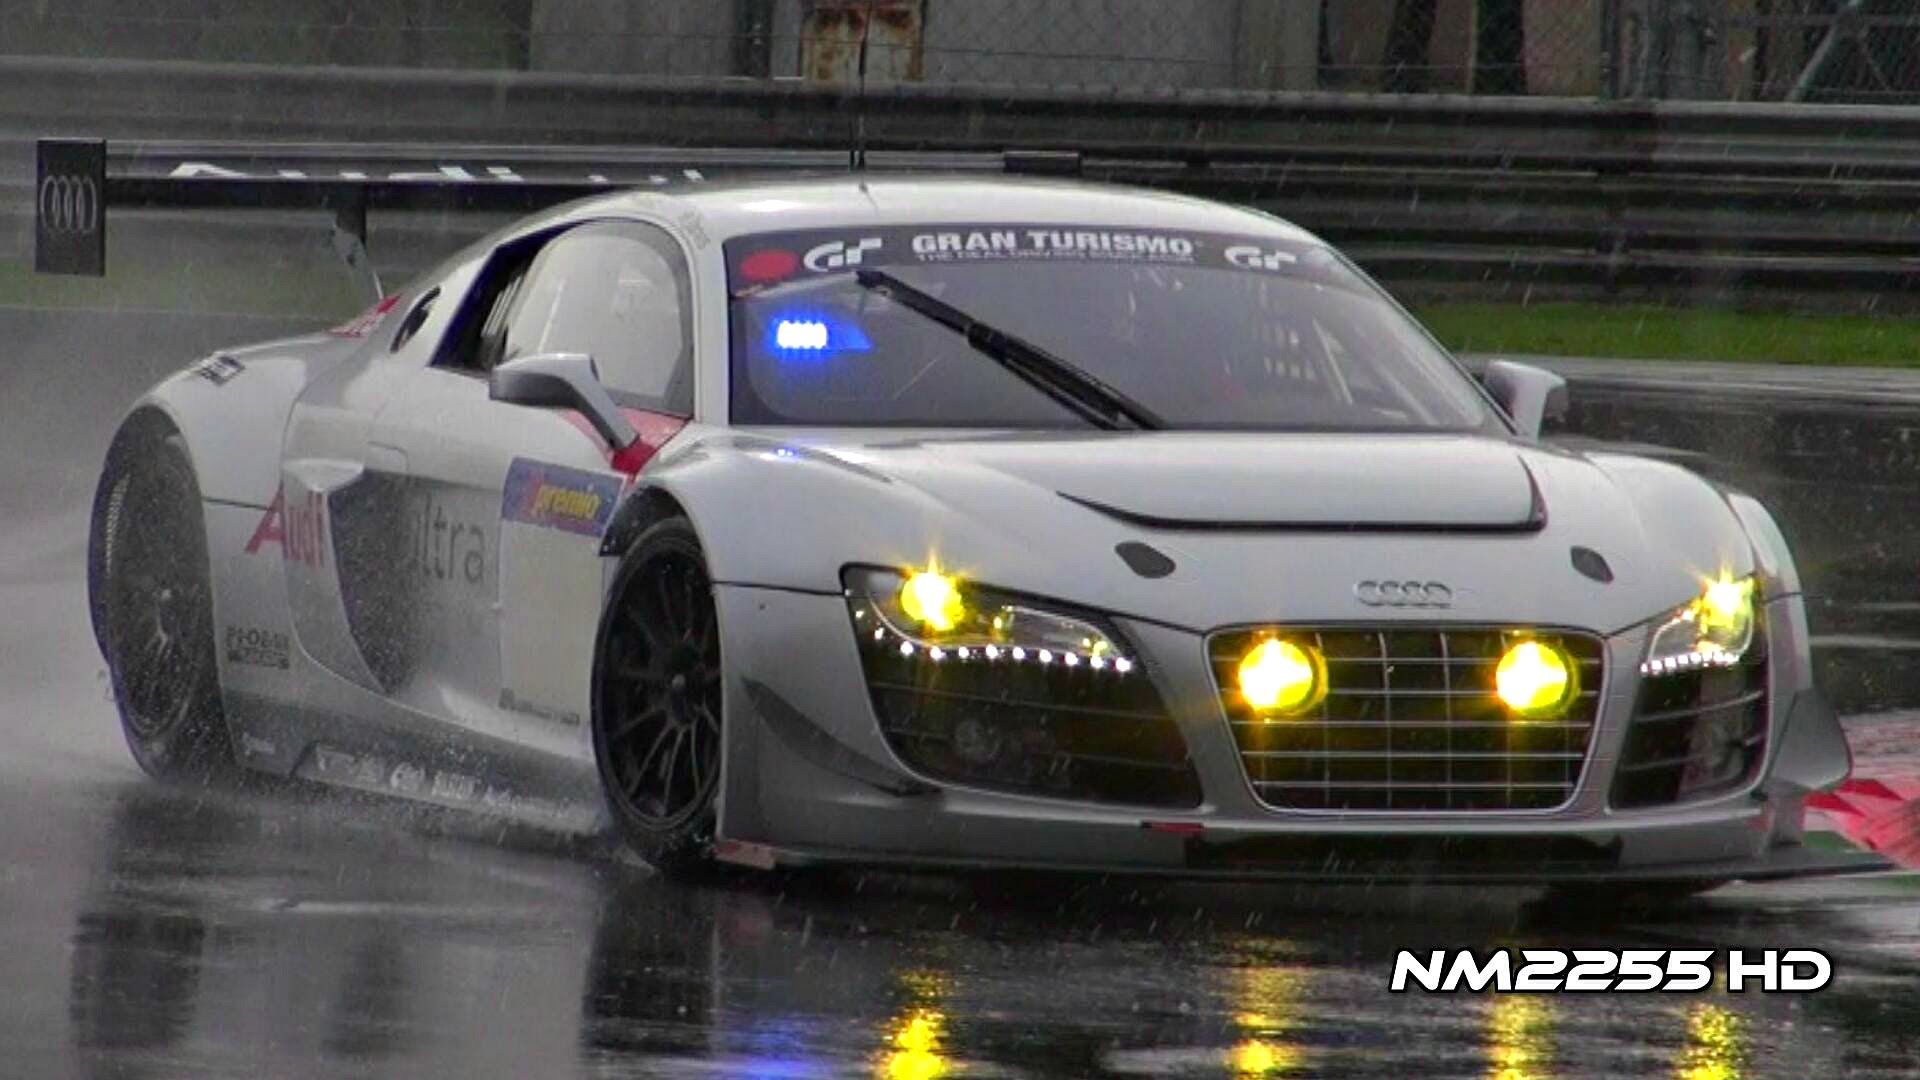 Full Hd 1080p Video By Nm2255 Official Audi Sport Test At Monza